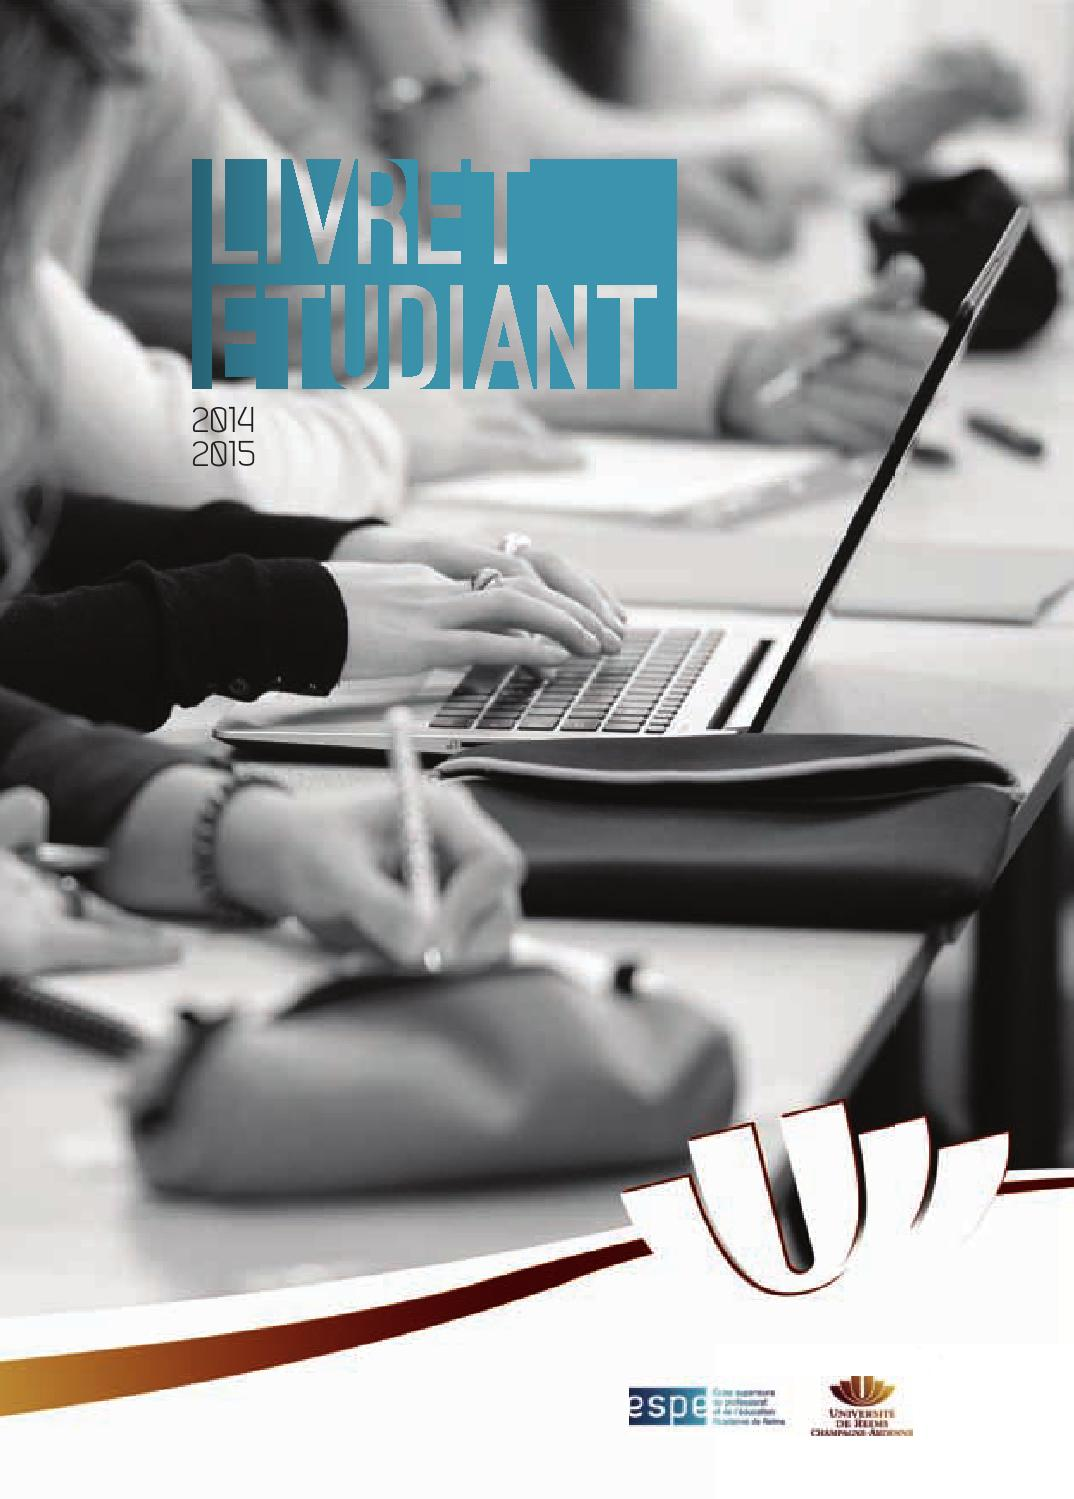 Livretetudiant By Espe Académie Reims Issuu